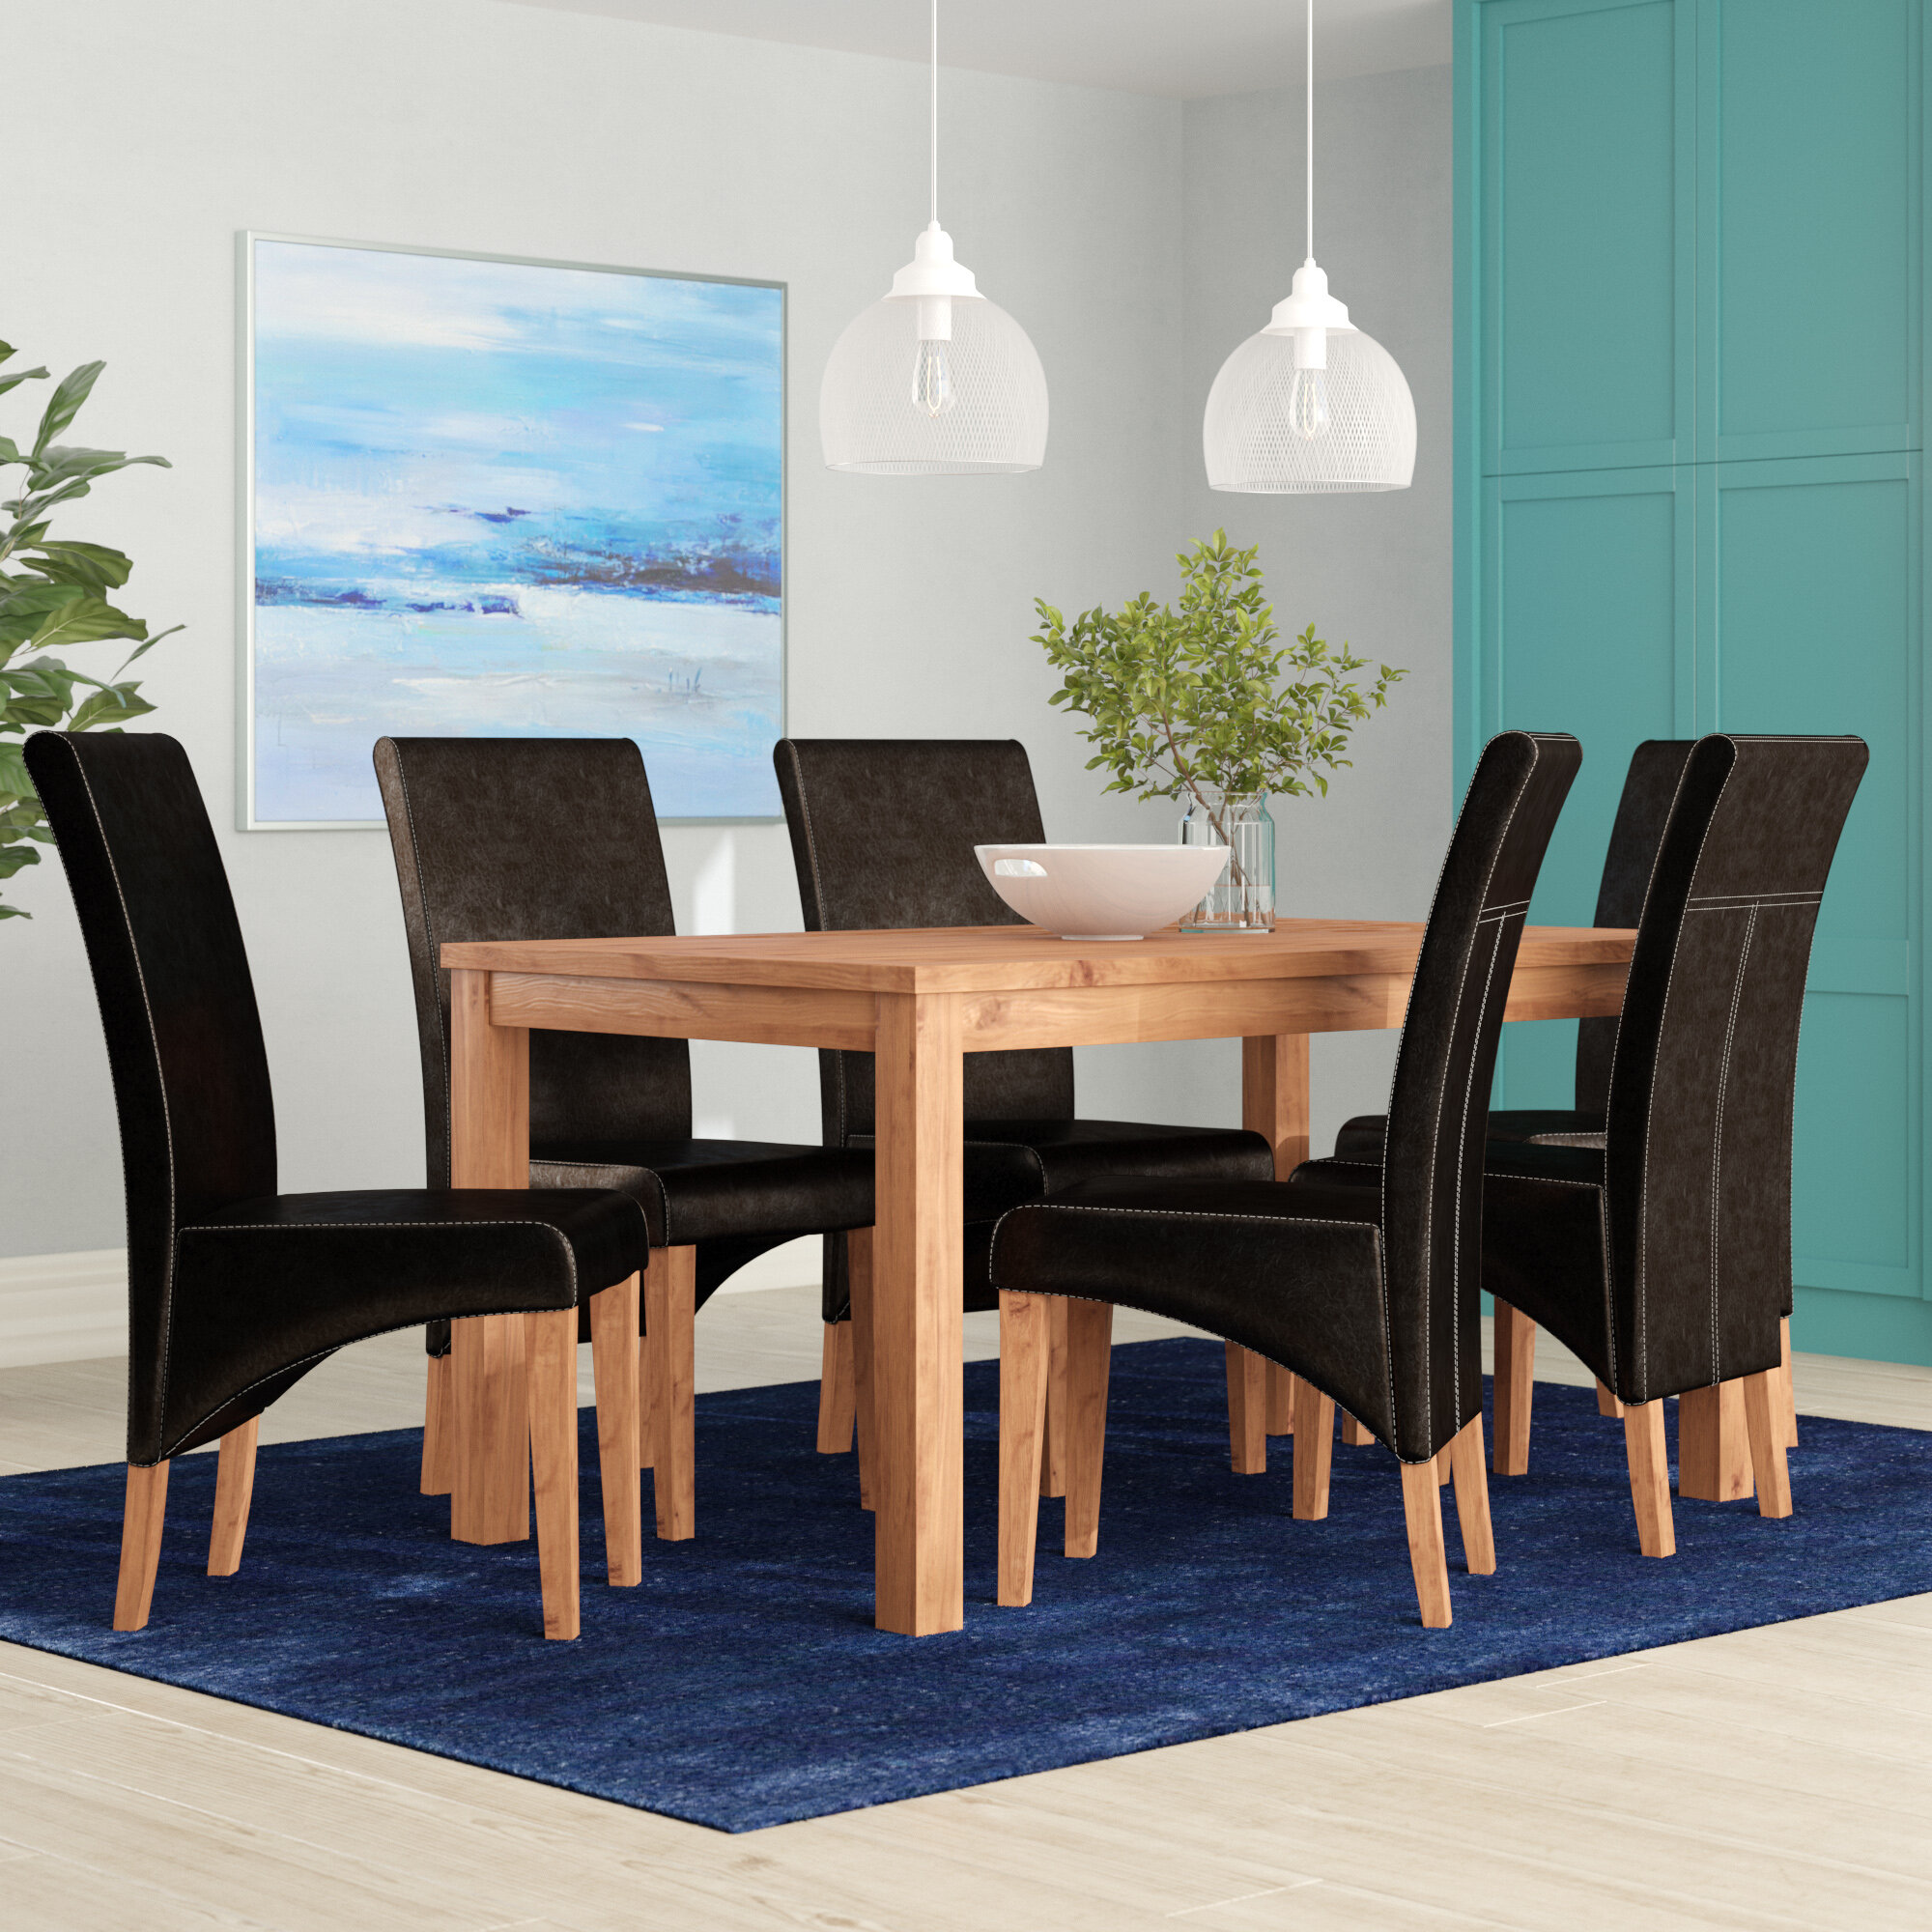 Riley Ave Samira Dining Set With 6 Chairs Reviews Wayfair Co Uk